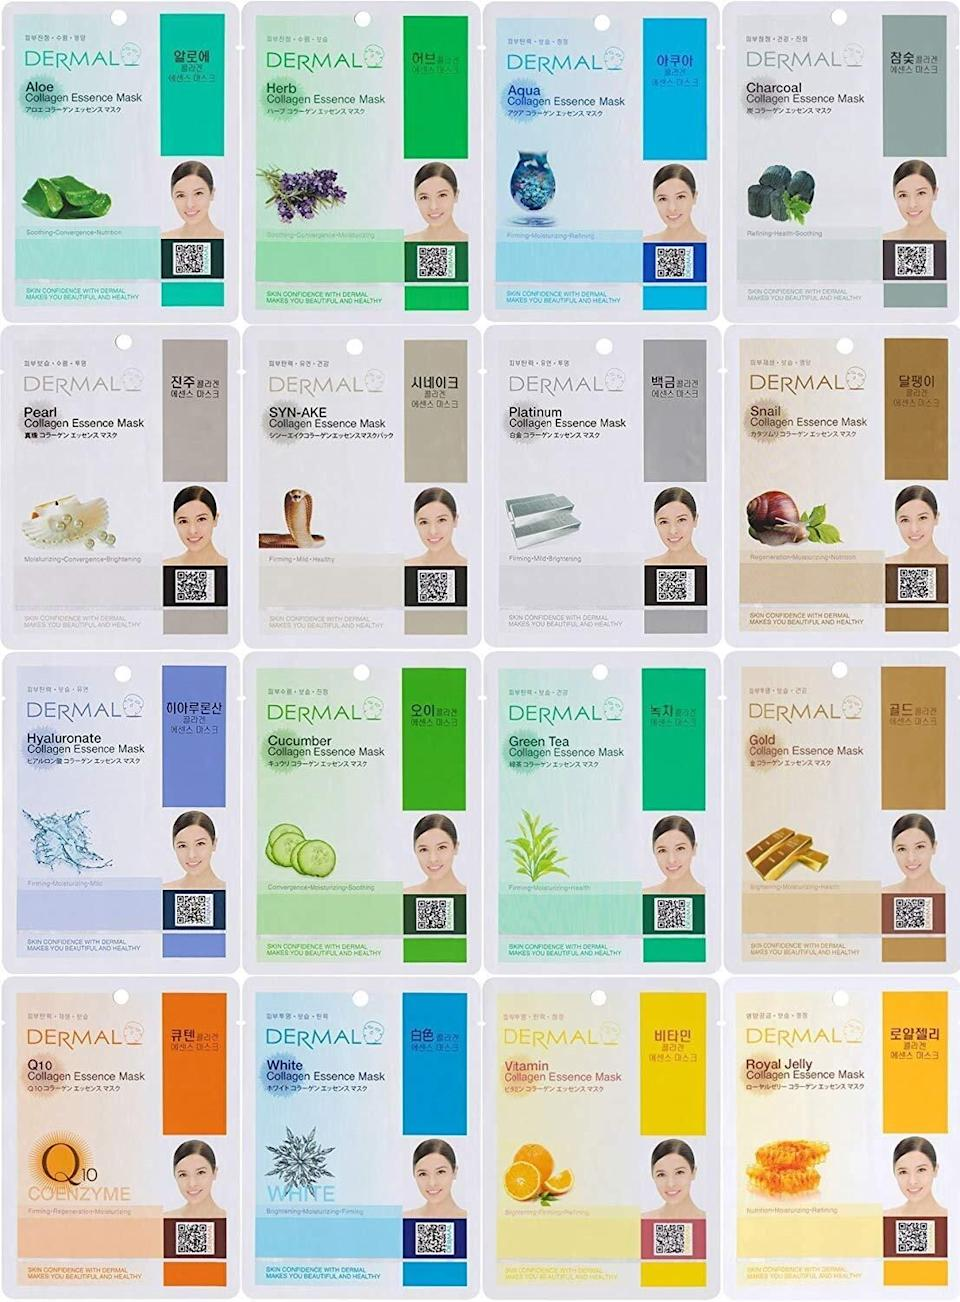 "Treat yourself to some self-care time. These masks contain collagen and vitamin E to help keep dryness at bay and wake up tired skin. <br /><br /><strong>Promising review:</strong> ""These sheet masks are legit. I use one every night, it has been week one and my skin has never looked better! <strong>My skin feels smooth, it looks soft, clear, bright, and glows! Not only does it work on me but my mom has been using them with me and there has been obvious improvement in her skin texture.</strong> After washing my face at night, I slap one of these babies on for 30 minutes and remove the sheet. Massage the extra essence into my skin and neck and I wake up with dewy, soft, supple, and glowing skin. My skin stays moisturized all day. I can't live without these now. The price is so worth it for the results."" — <a href=""https://amzn.to/3v9Qhub"" target=""_blank"" rel=""nofollow noopener noreferrer"" data-skimlinks-tracking=""5735076"" data-vars-affiliate=""Amazon"" data-vars-href=""https://www.amazon.com/gp/customer-reviews/R1JMPLVG7PJLYO?tag=bfnusrat-20&ascsubtag=5735076%2C22%2C27%2Cmobile_web%2C0%2C0%2C15806884"" data-vars-keywords=""cleaning,fast fashion,skincare"" data-vars-link-id=""15806884"" data-vars-price="""" data-vars-product-id=""15930615"" data-vars-retailers=""Amazon"">Amy</a><br /><br /><strong>Get a 16-pack from Amazon for <a href=""https://amzn.to/3uXkKeF"" target=""_blank"" rel=""nofollow noopener noreferrer"" data-skimlinks-tracking=""5735076"" data-vars-affiliate=""Amazon"" data-vars-asin=""B00BAM7F8C"" data-vars-href=""https://www.amazon.com/dp/B00BAM7F8C?tag=bfnusrat-20&ascsubtag=5735076%2C22%2C27%2Cmobile_web%2C0%2C0%2C15806841"" data-vars-keywords=""cleaning,fast fashion,skincare"" data-vars-link-id=""15806841"" data-vars-price="""" data-vars-product-id=""16272545"" data-vars-product-img=""https://m.media-amazon.com/images/I/51GpwVkKFXL._SL500_.jpg"" data-vars-product-title=""DERMAL Korea Collagen Essence Full Face Facial Mask Sheet, 16 Combo Pack"" data-vars-retailers=""Amazon"">$9.99</a>.</strong>"